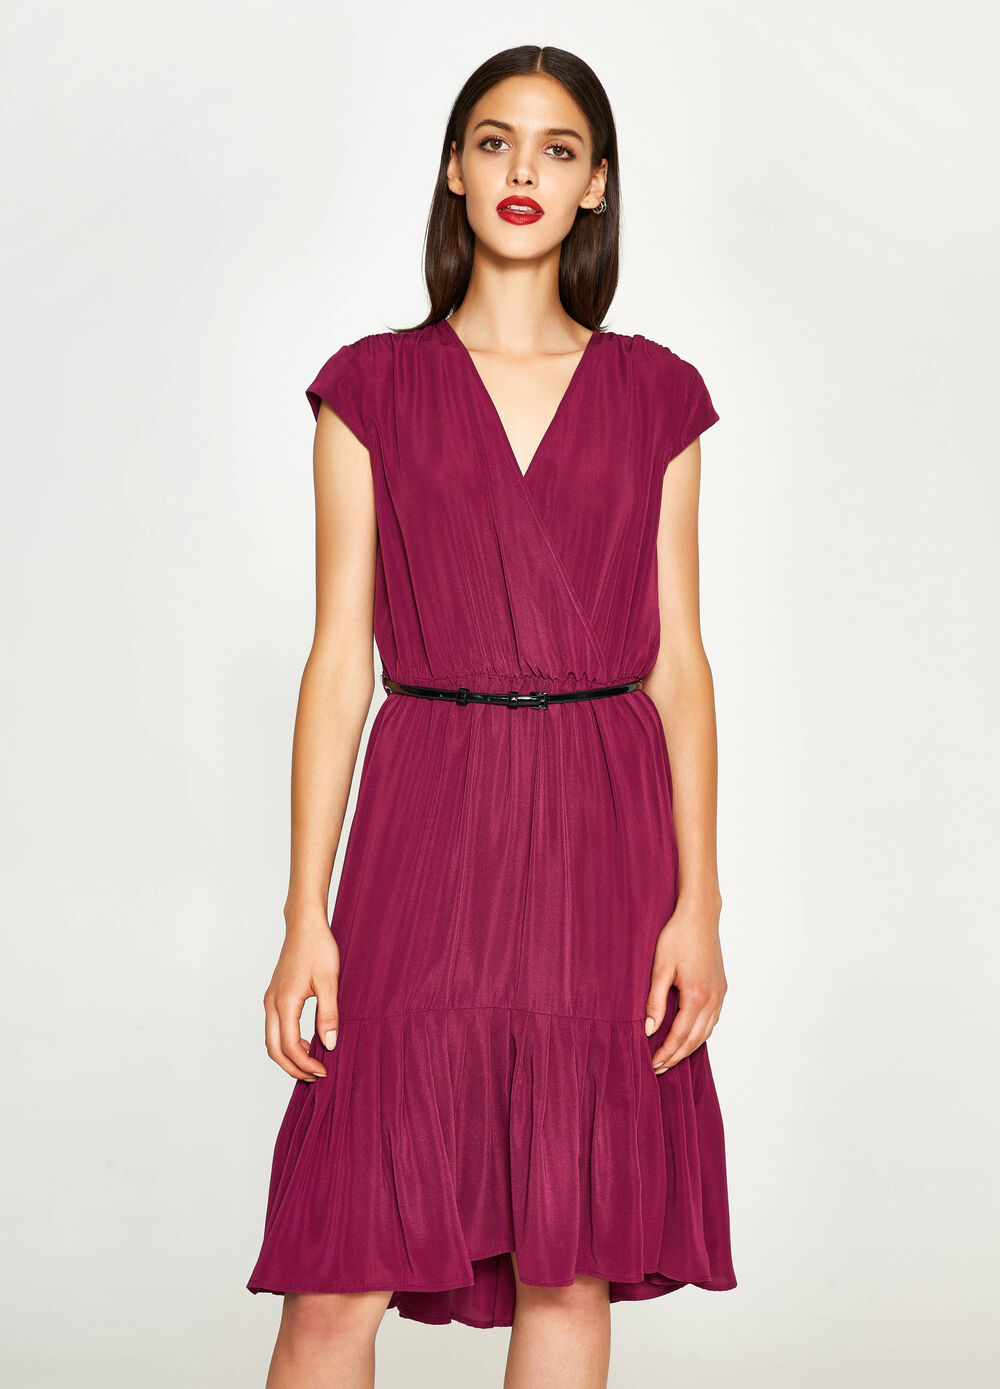 Dress with V-neck and flounce